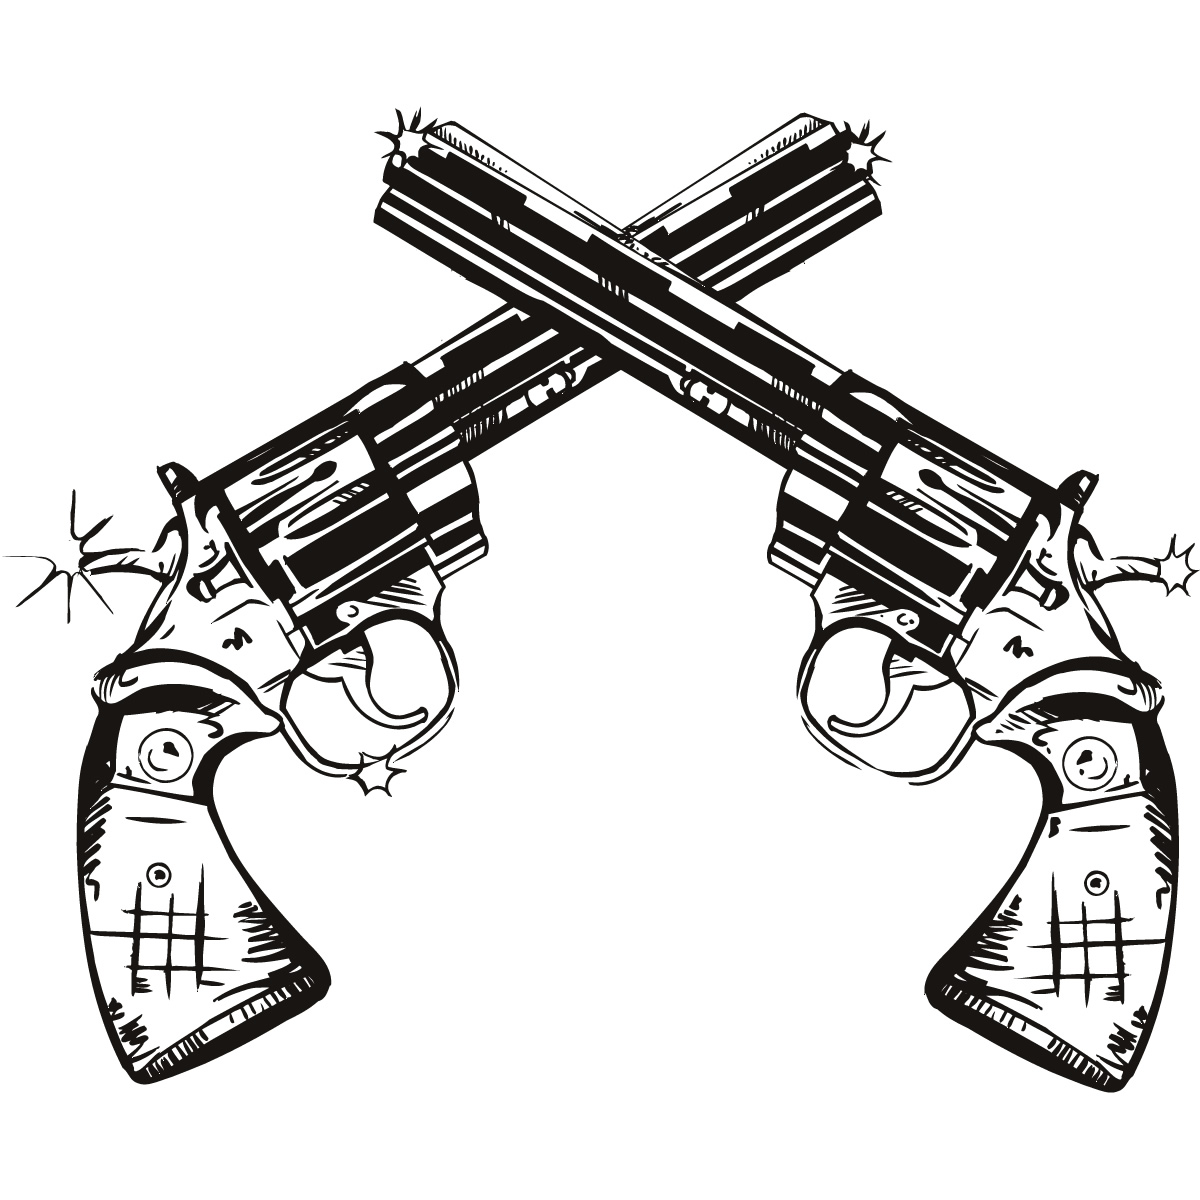 Guns clipart pistol. Pistols collection gun drawn